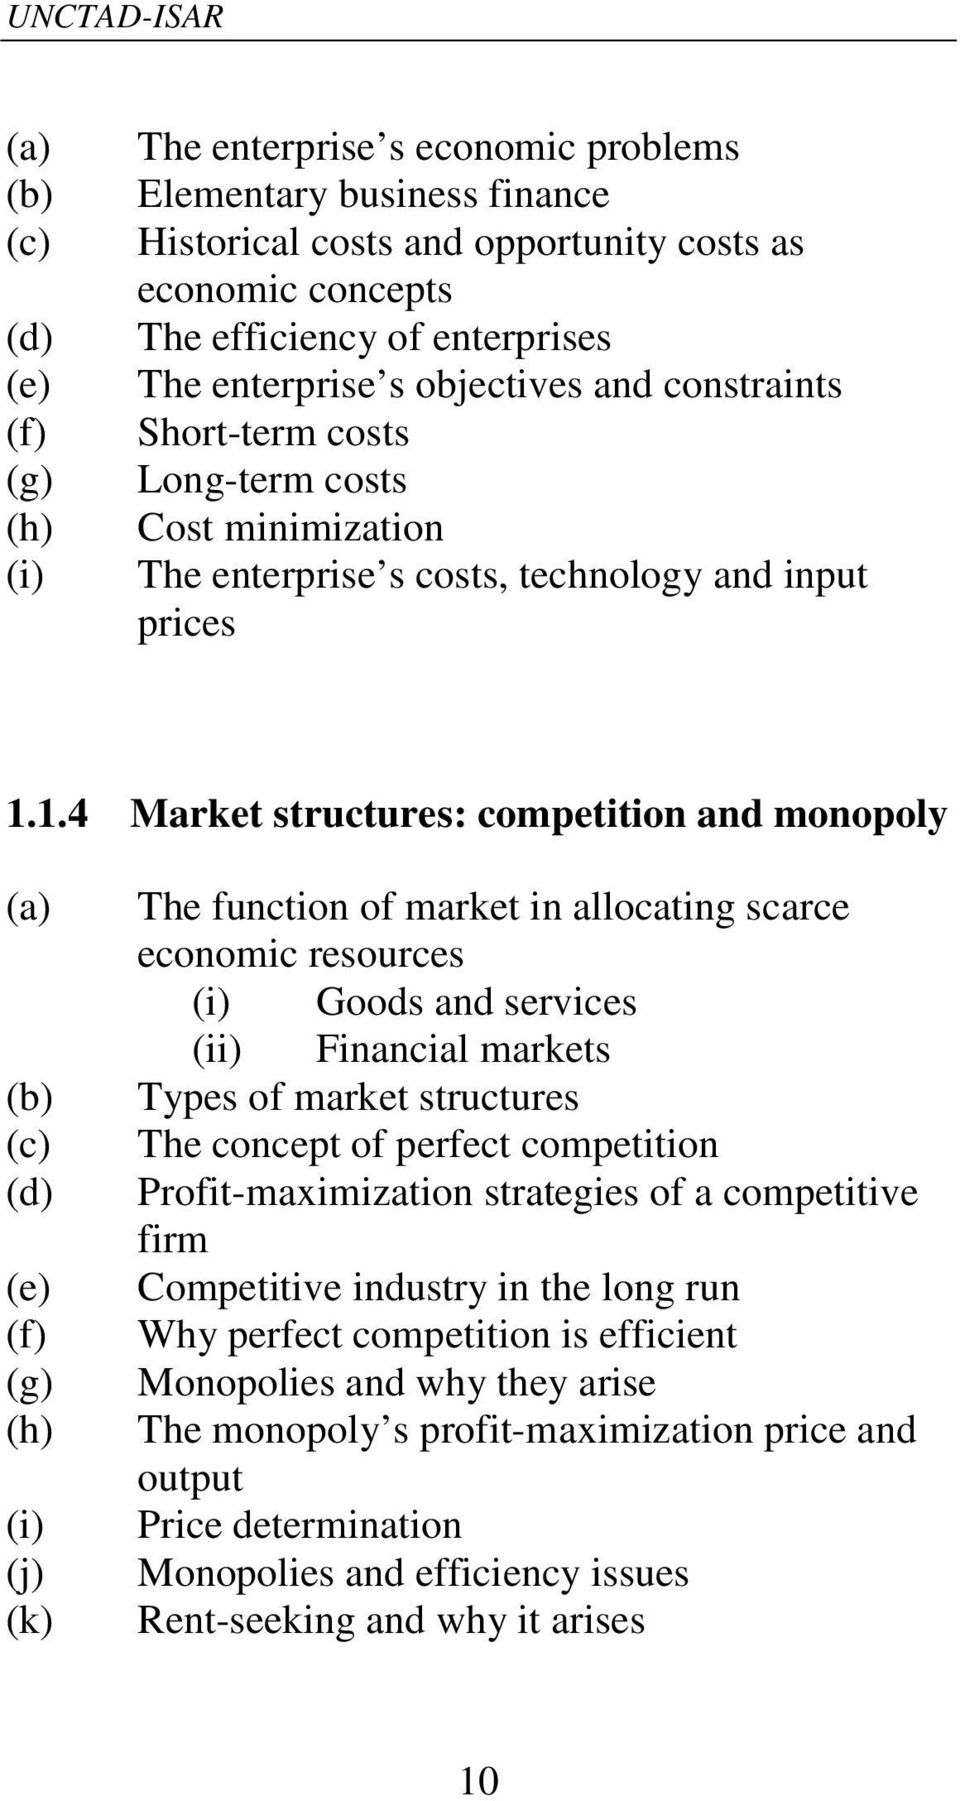 1.4 Market structures: competition and monopoly (e) (f) (g) (h) (i) (j) (k) The function of market in allocating scarce economic resources (i) Goods and services (ii) Financial markets Types of